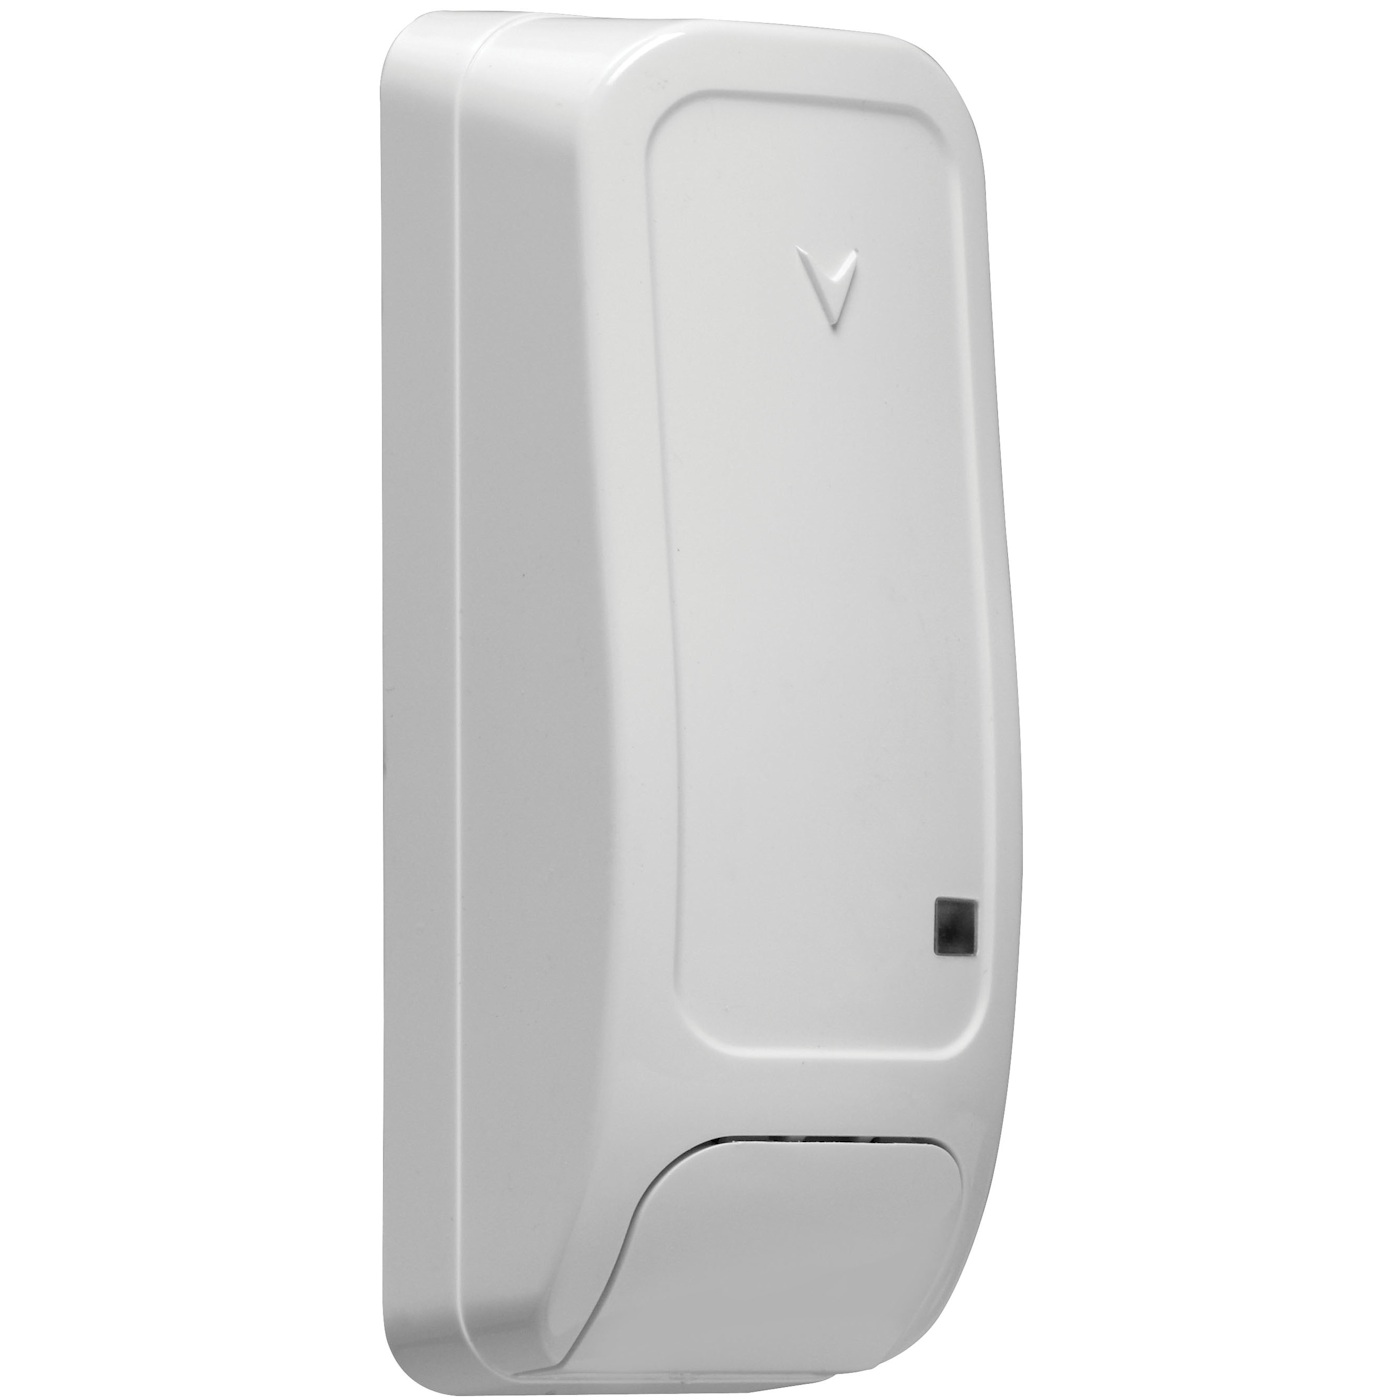 PG9945 - DSC Wireless PowerG Door & Window Alarm Contact ...